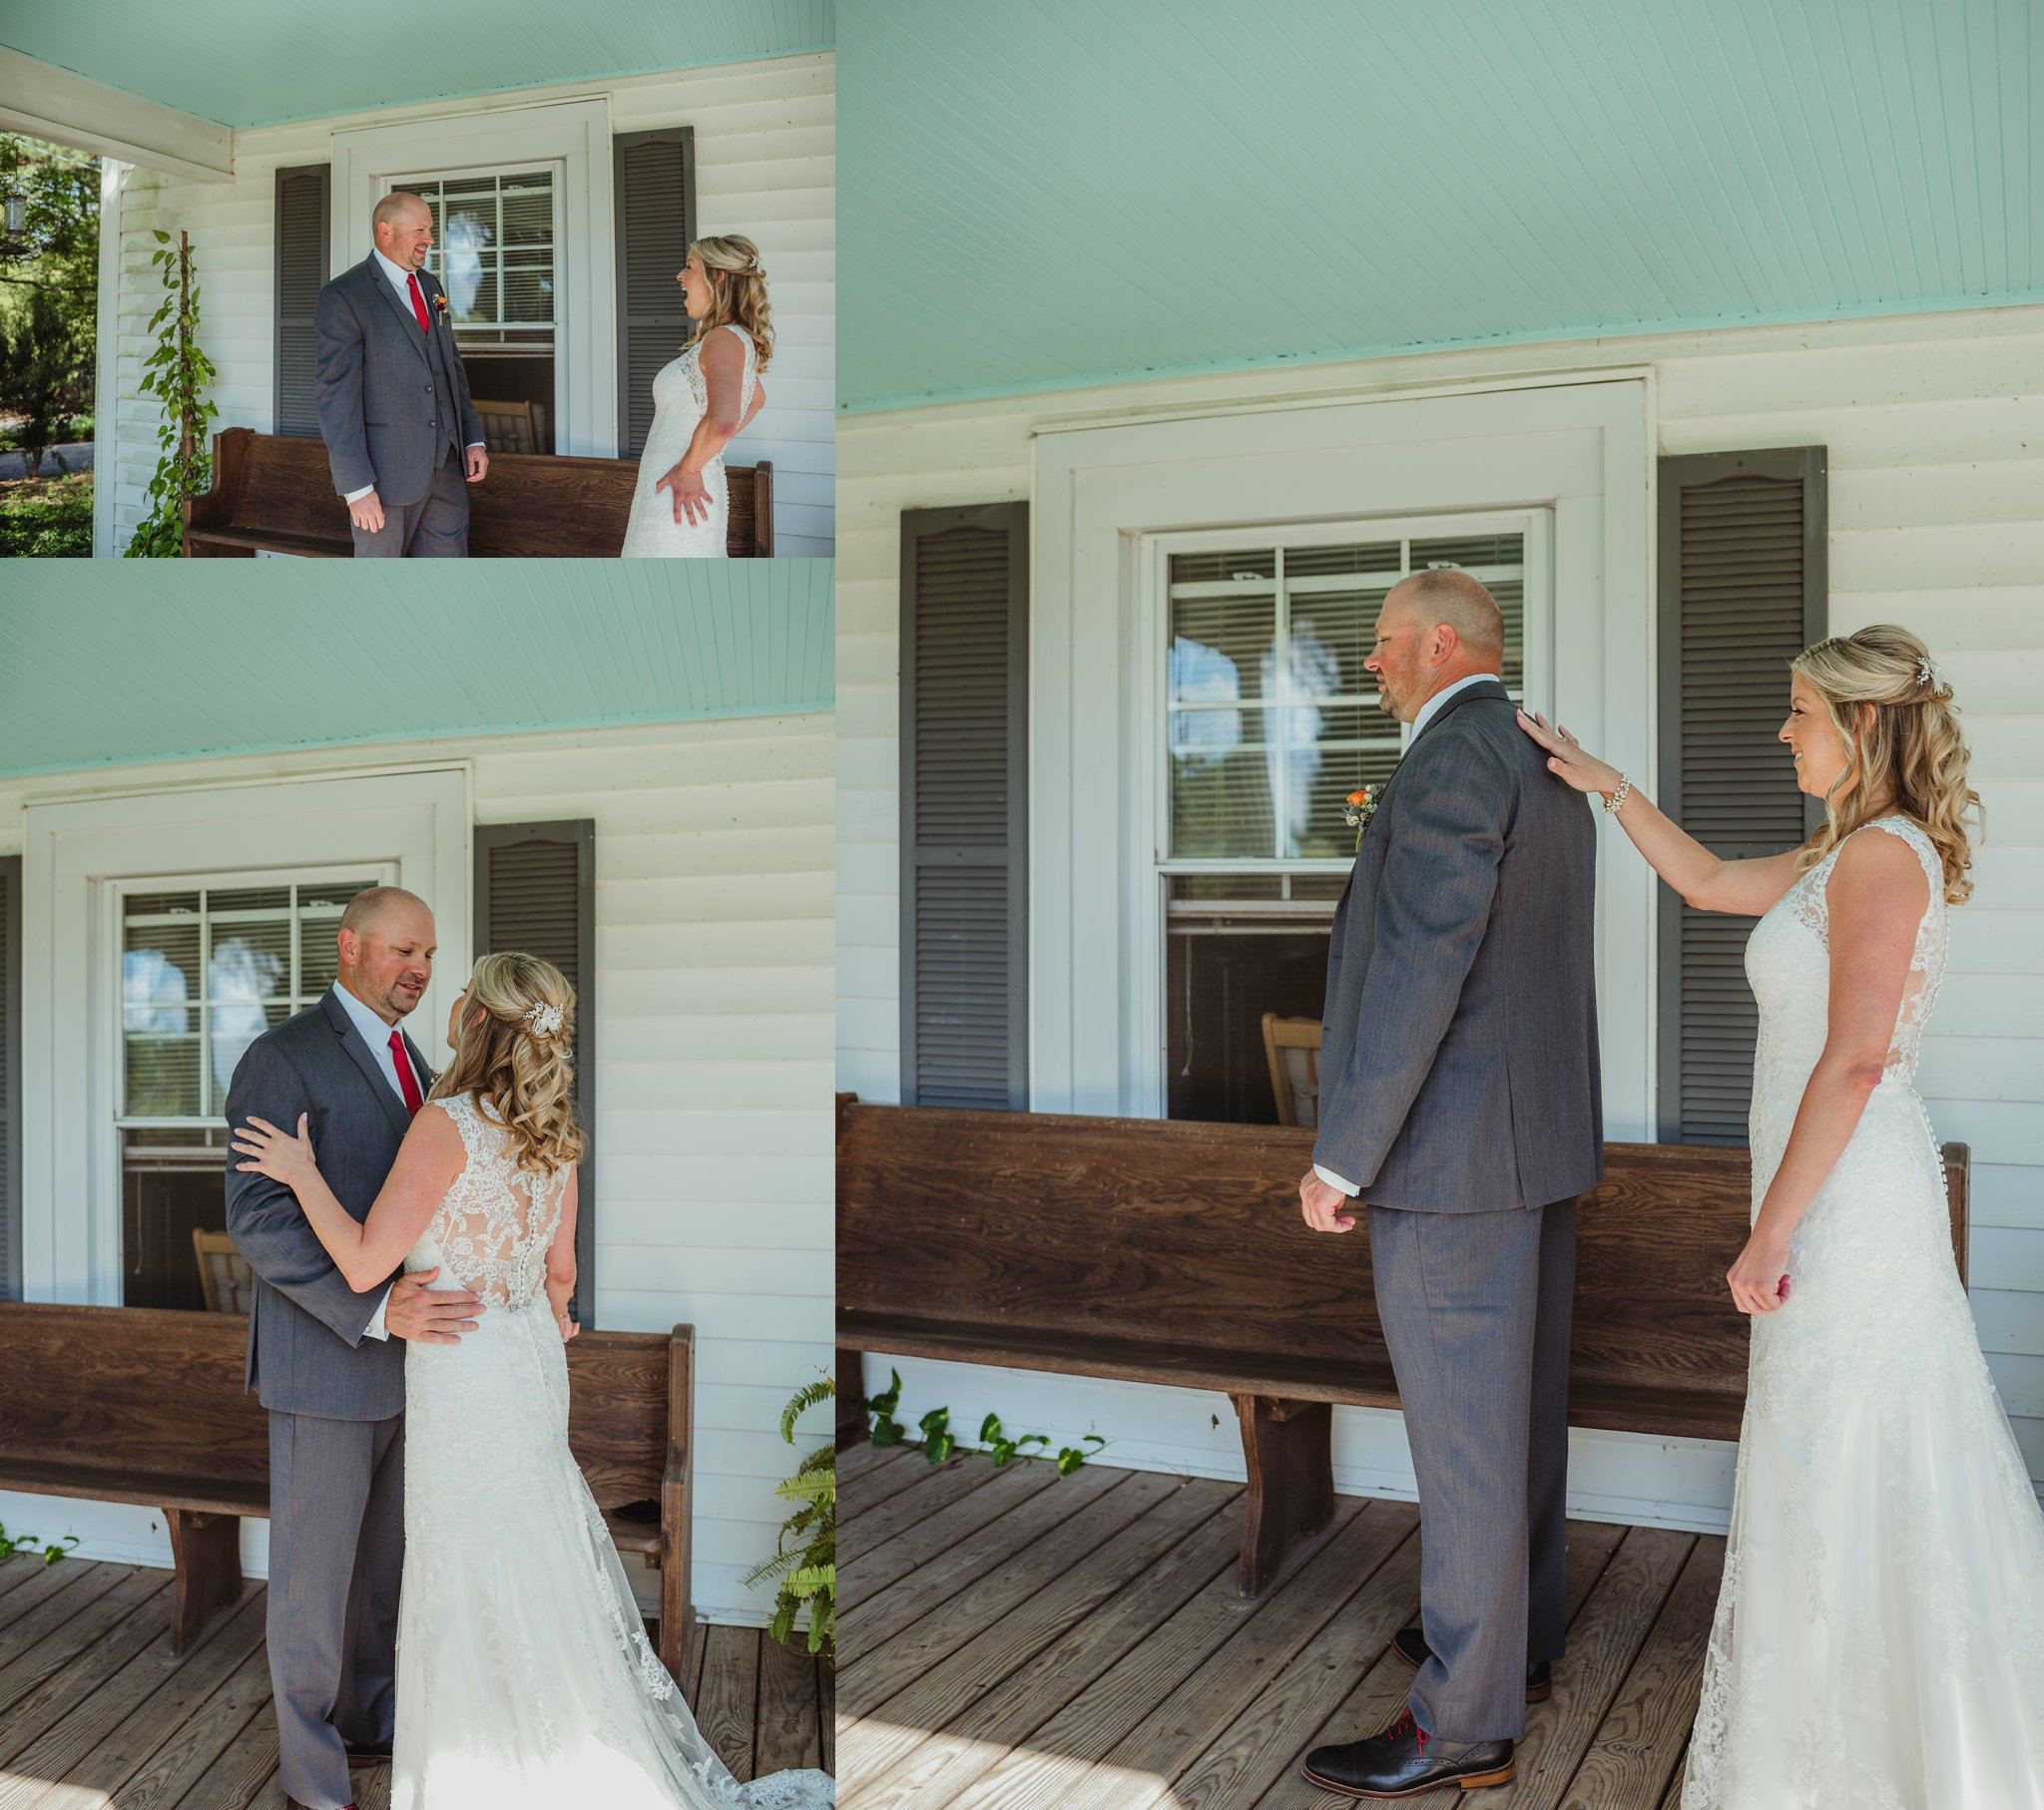 The bride and groom have a first look with Rose Trail Images before their wedding ceremony at Cedar Grove Acres near North Carolina.